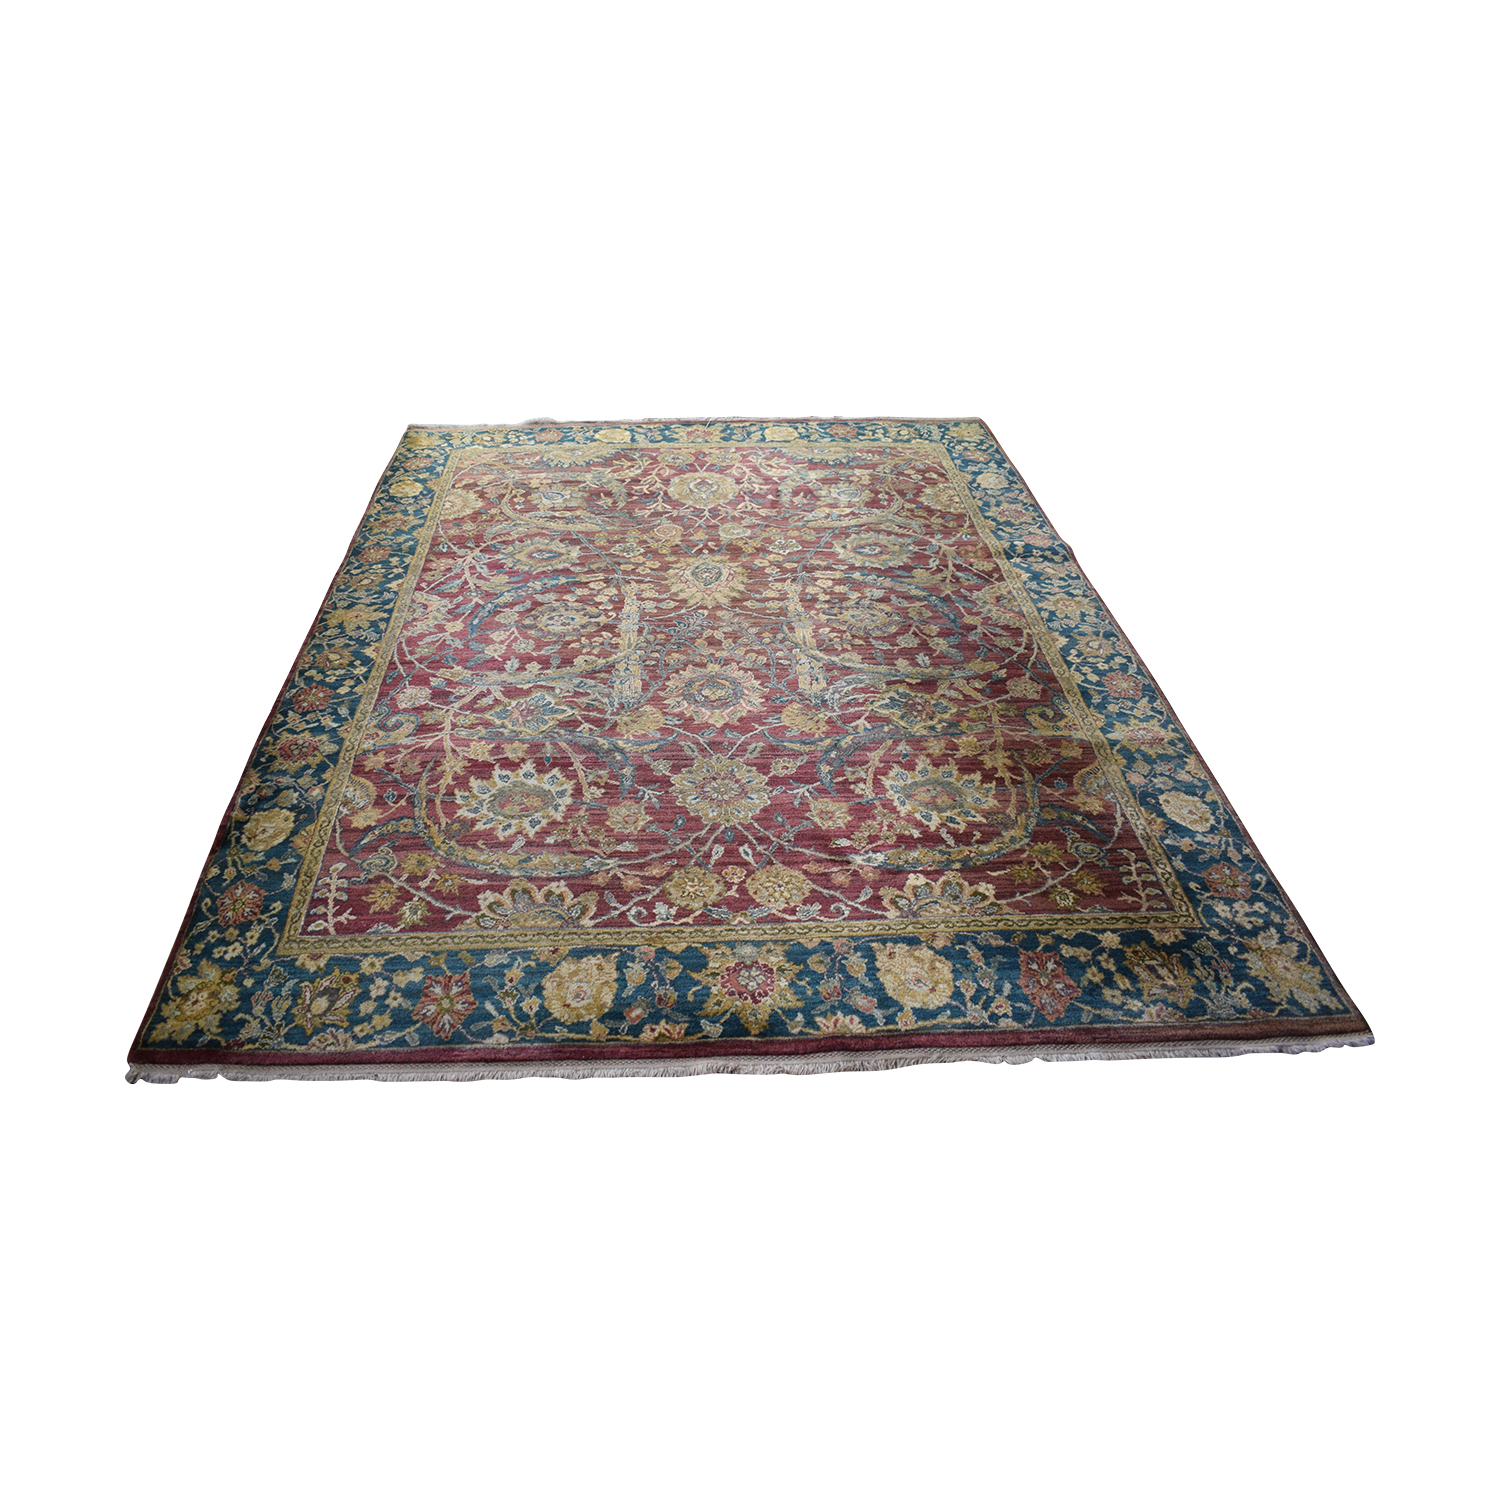 ABC Carpet & Home ABC Carpet & Home Rug multi